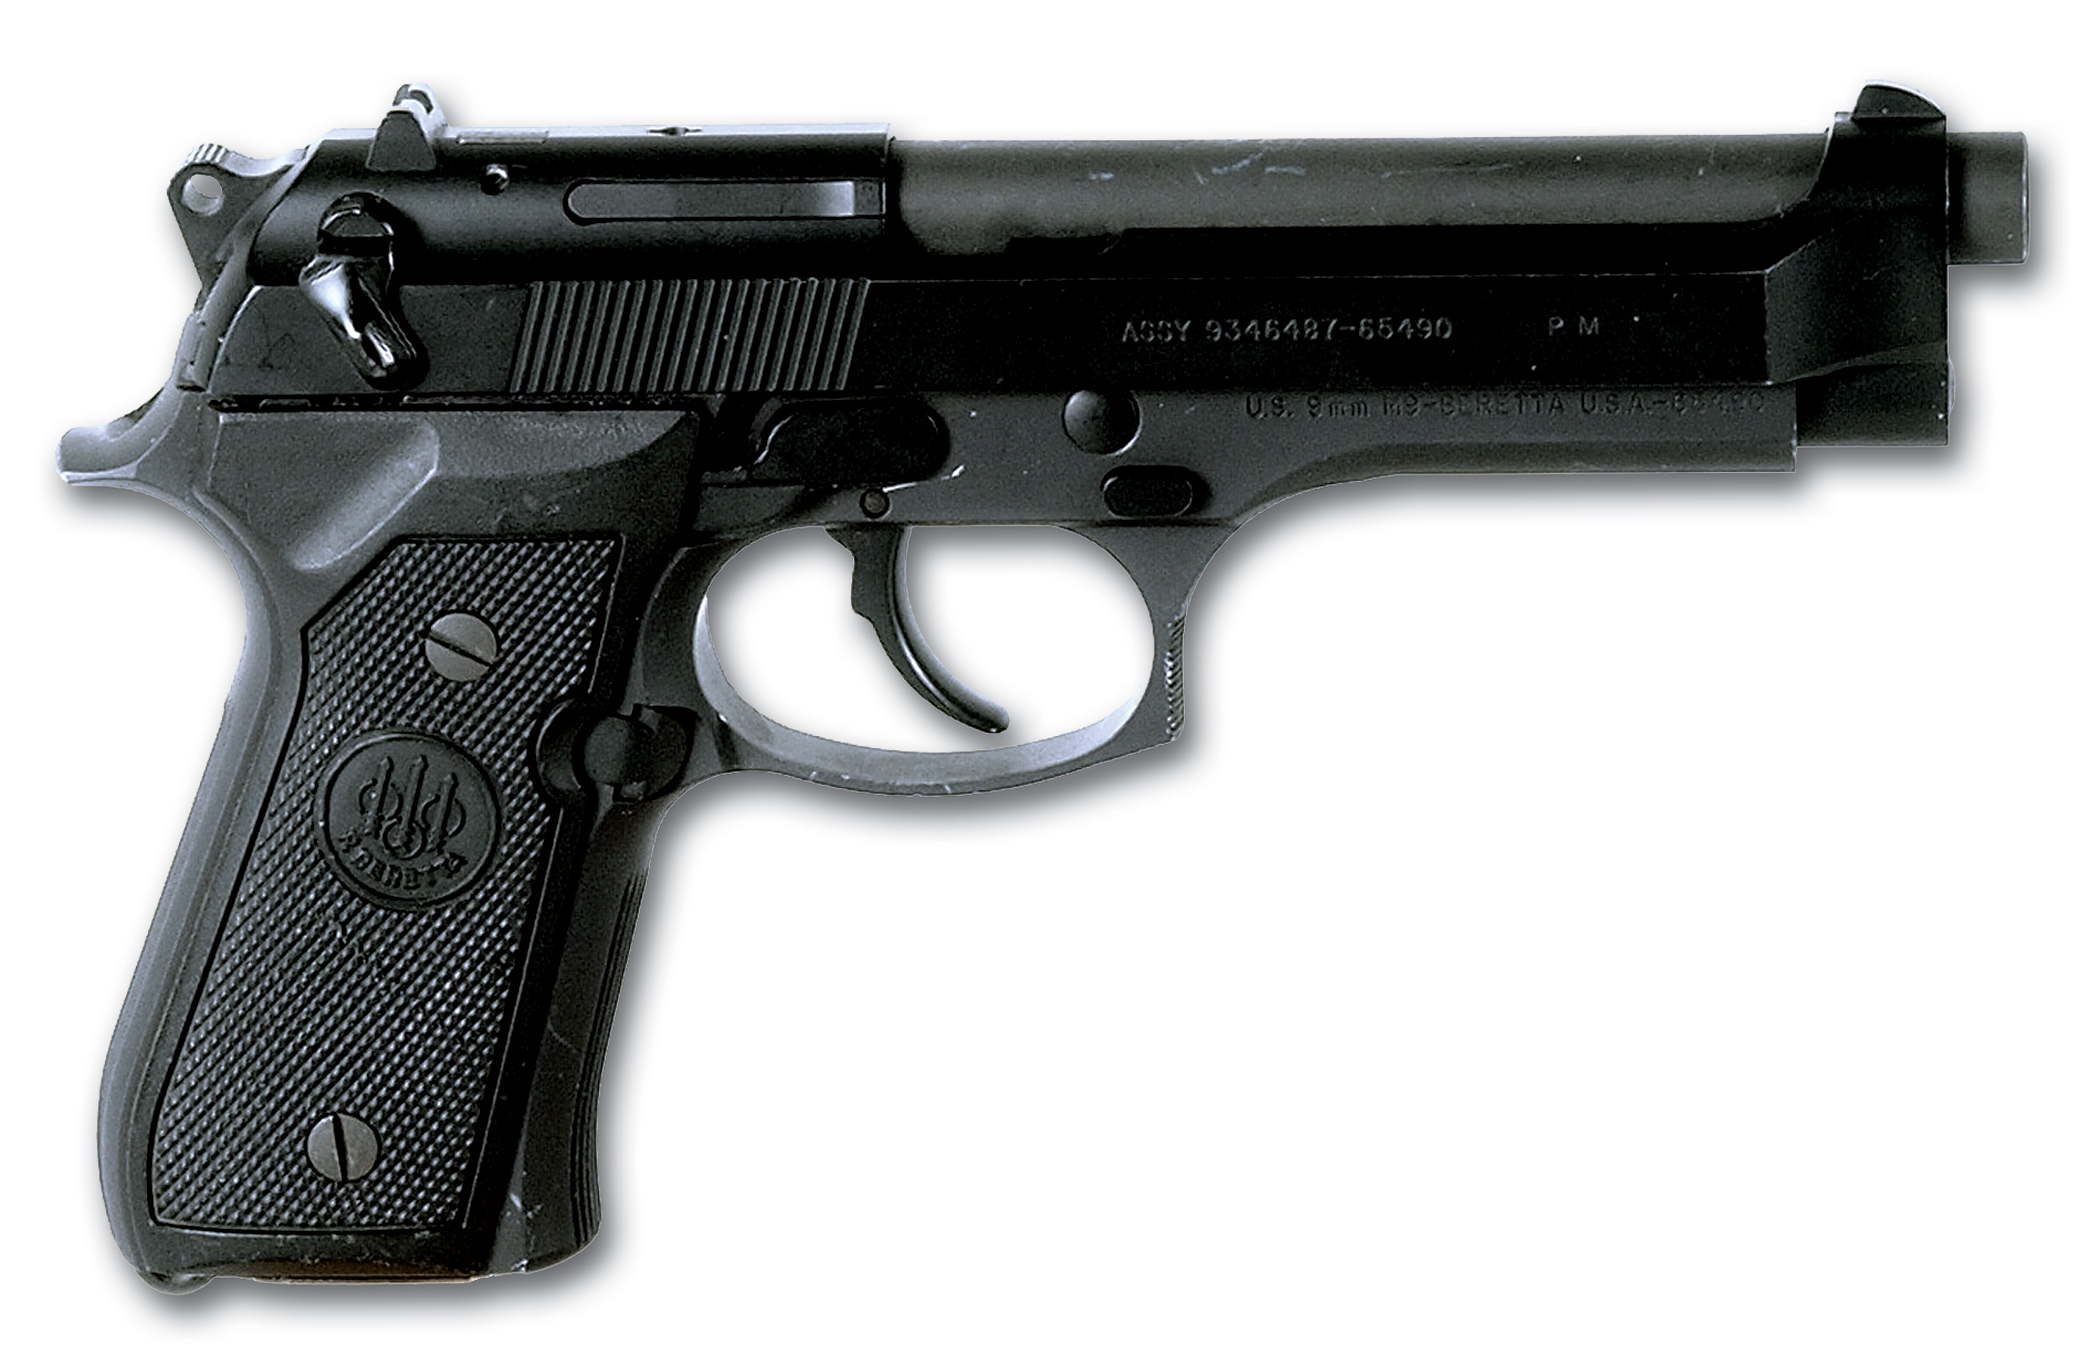 M9 9mm Semiautomatic Pistol